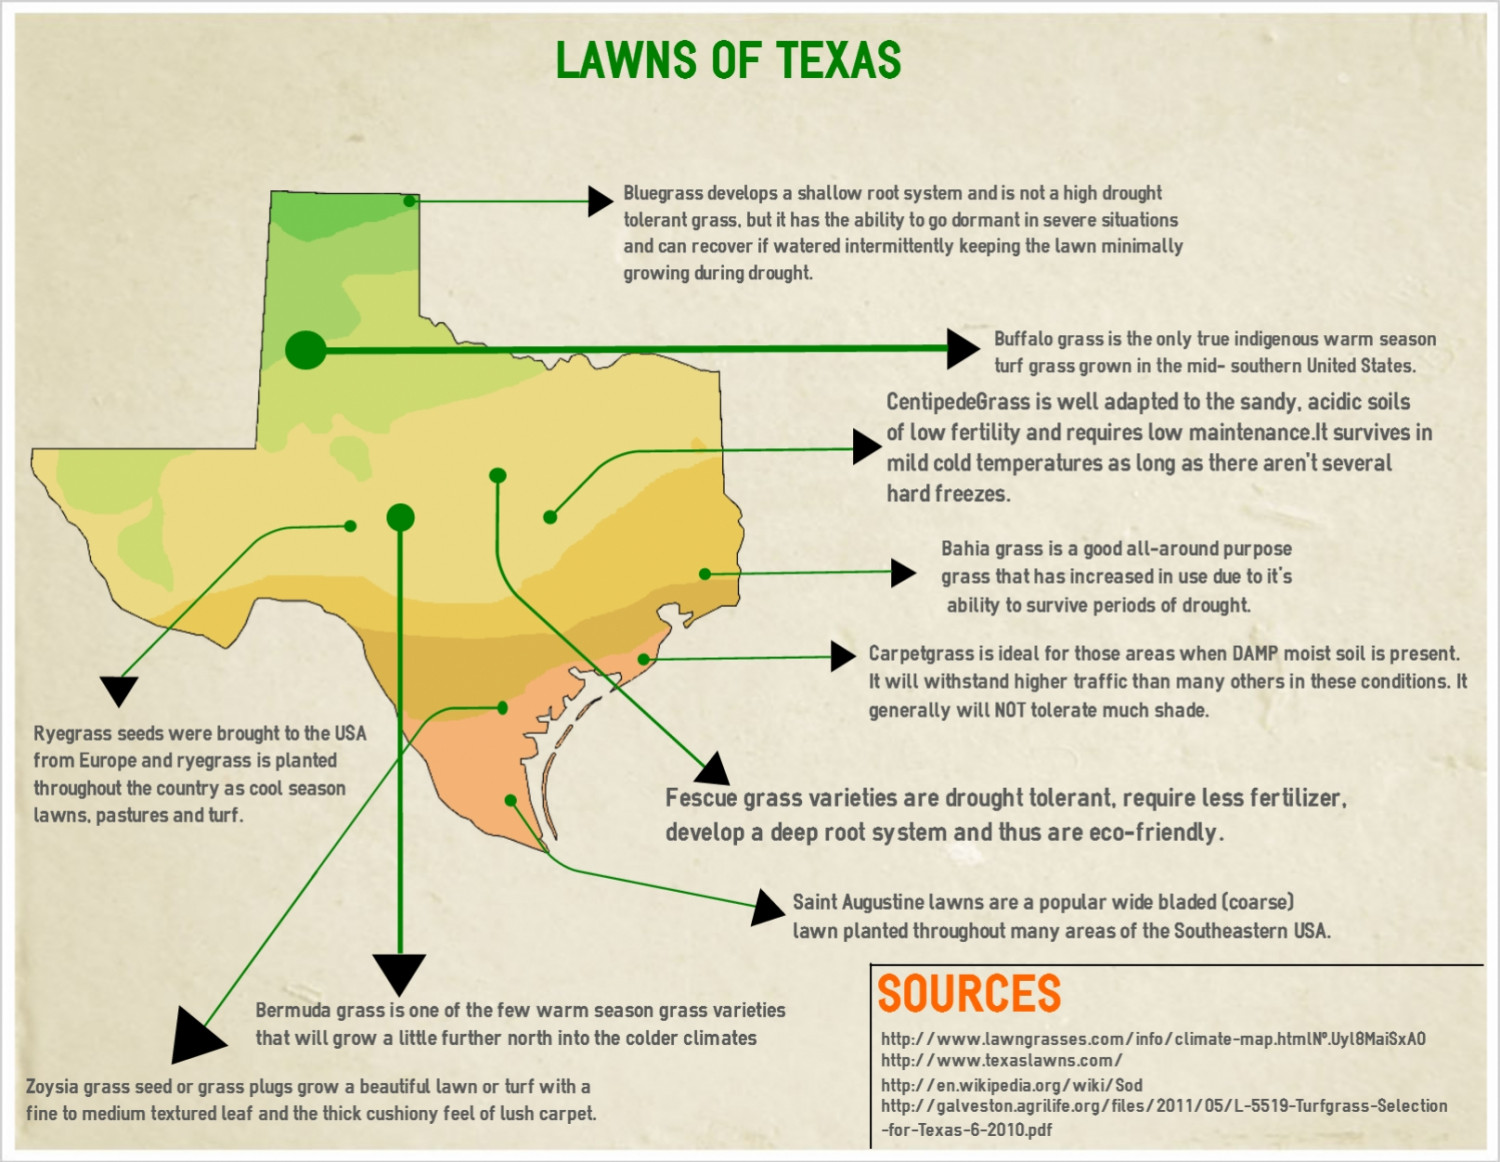 Lawns of Texas Infographic